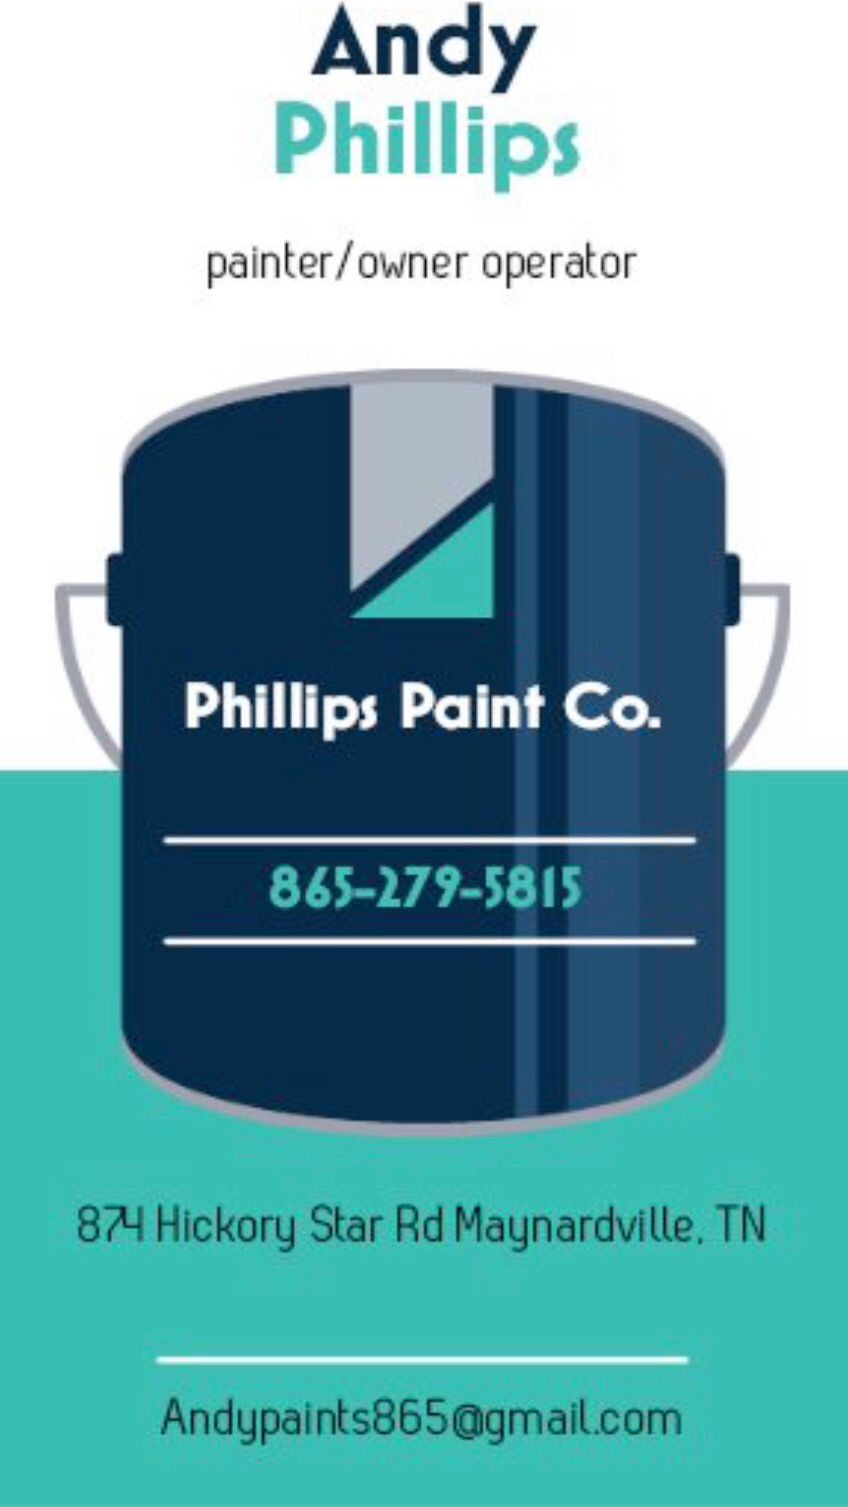 Phillips Painting Co.